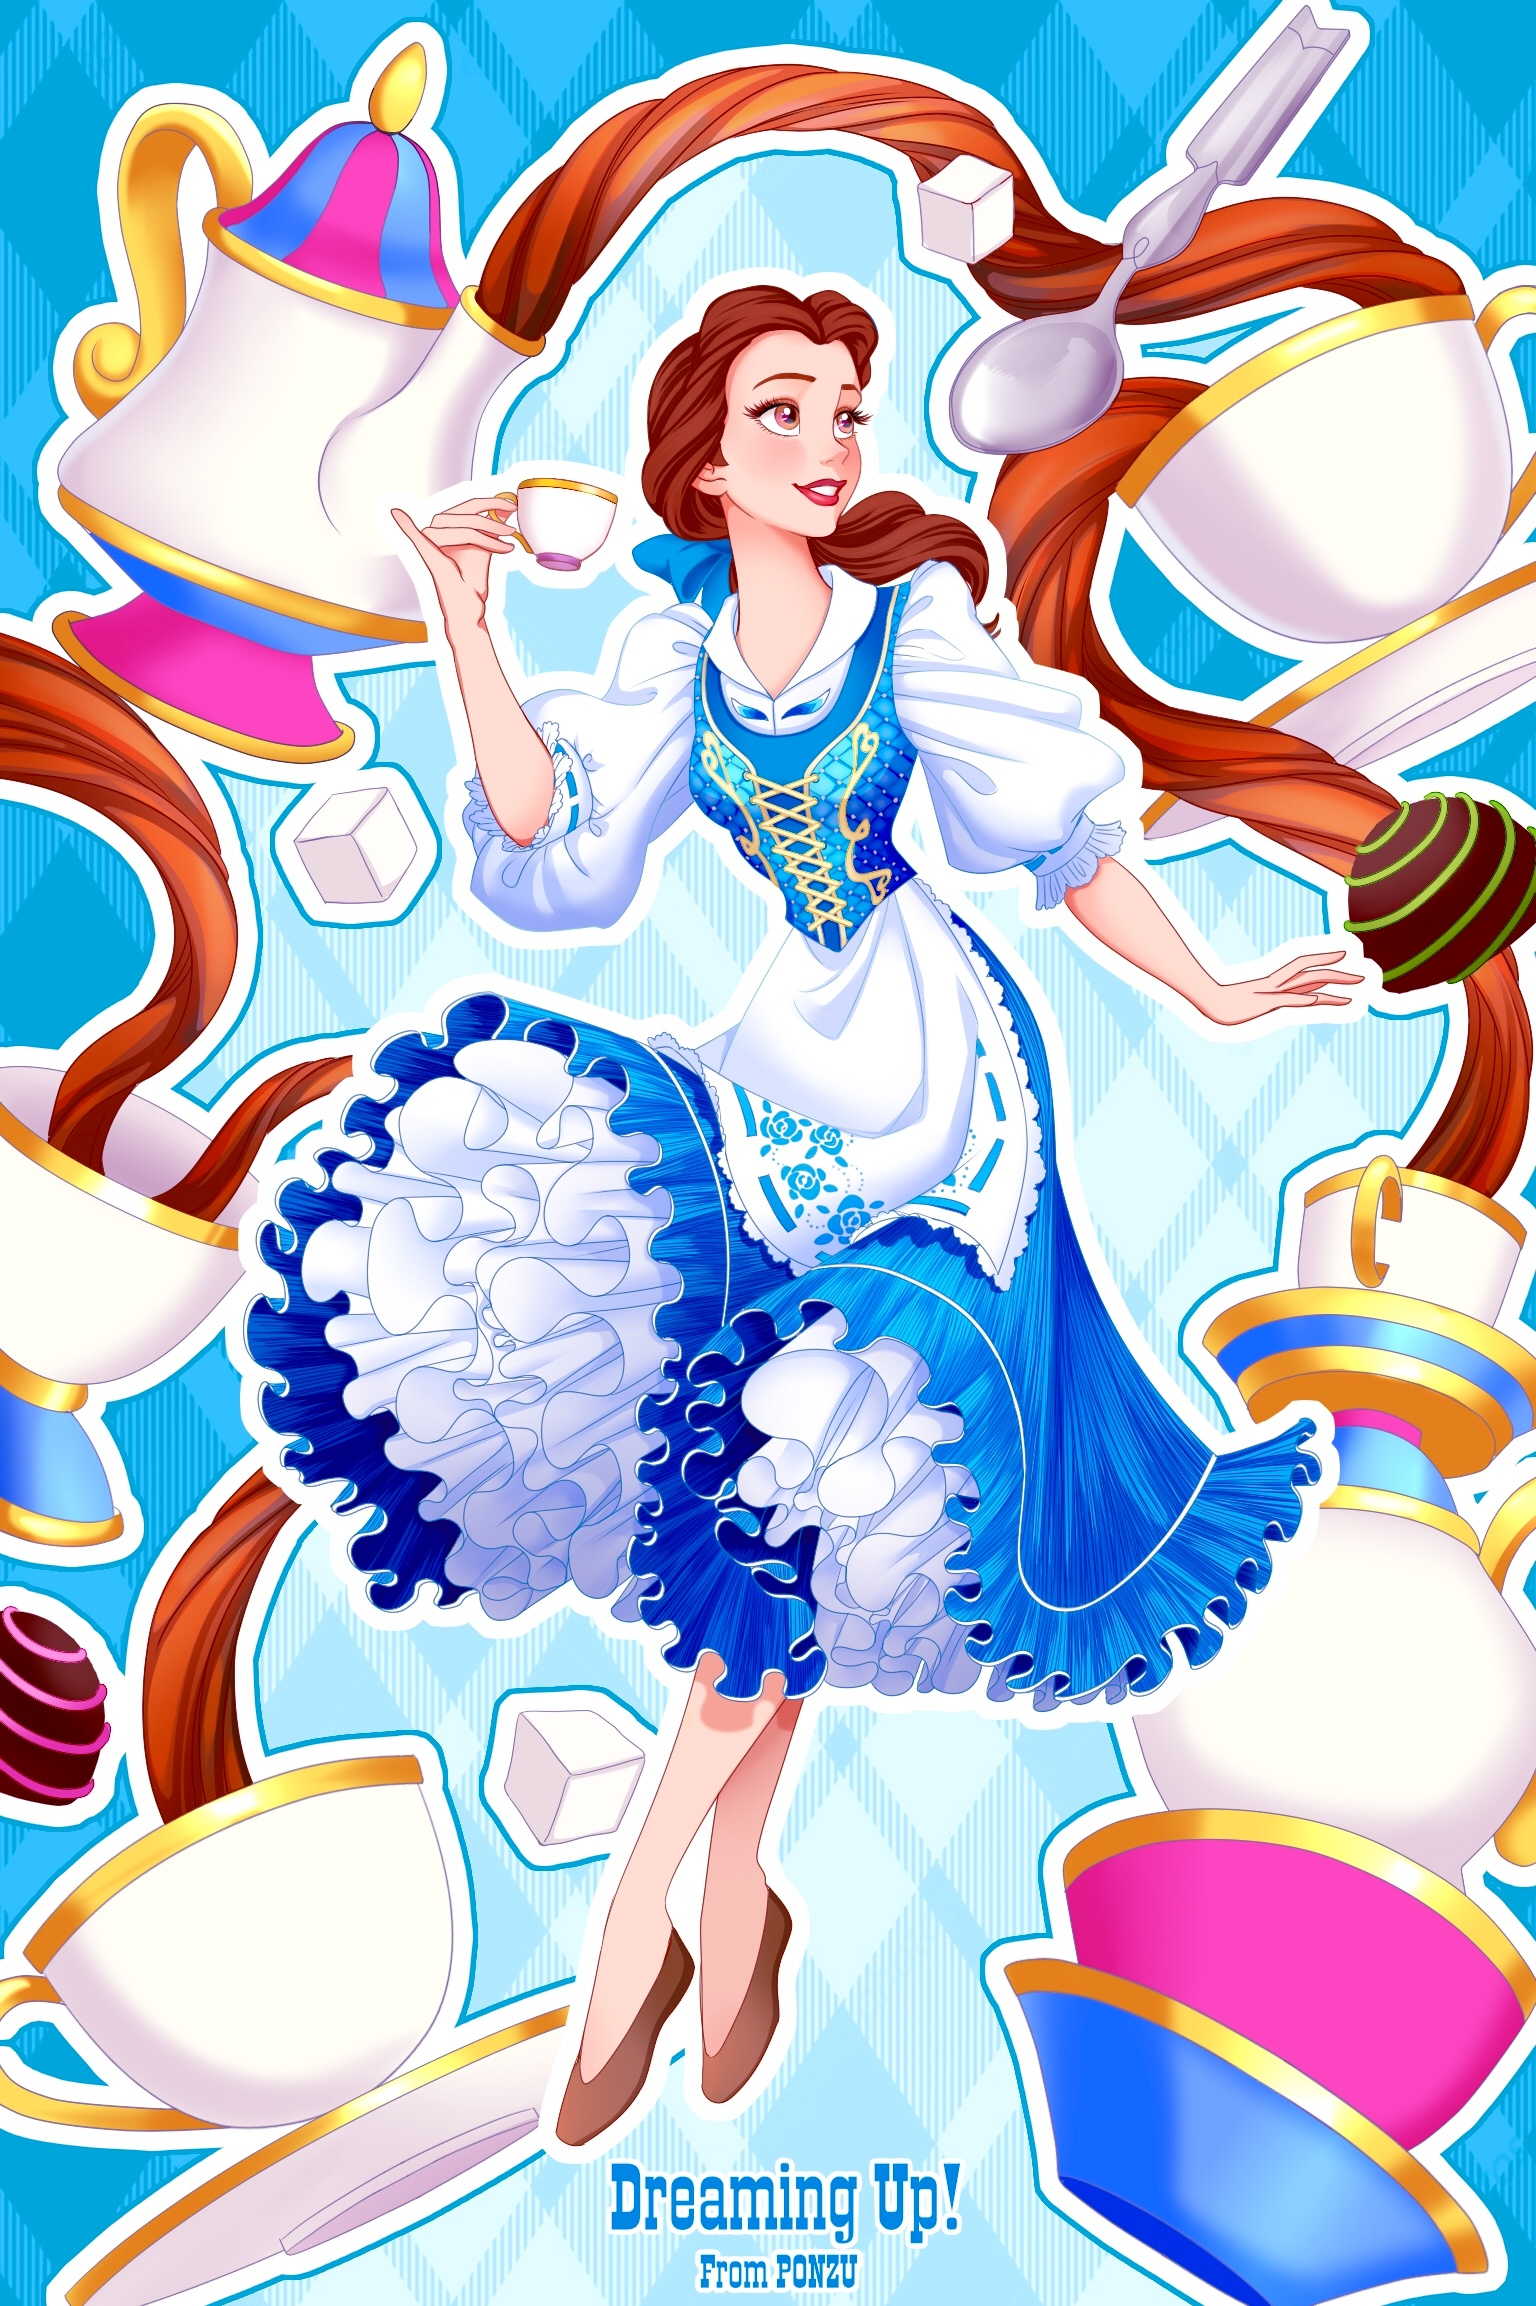 Belle Beauty And The Beast Beauty And The Beast Disney Image 2779867 Zerochan Anime Image Board